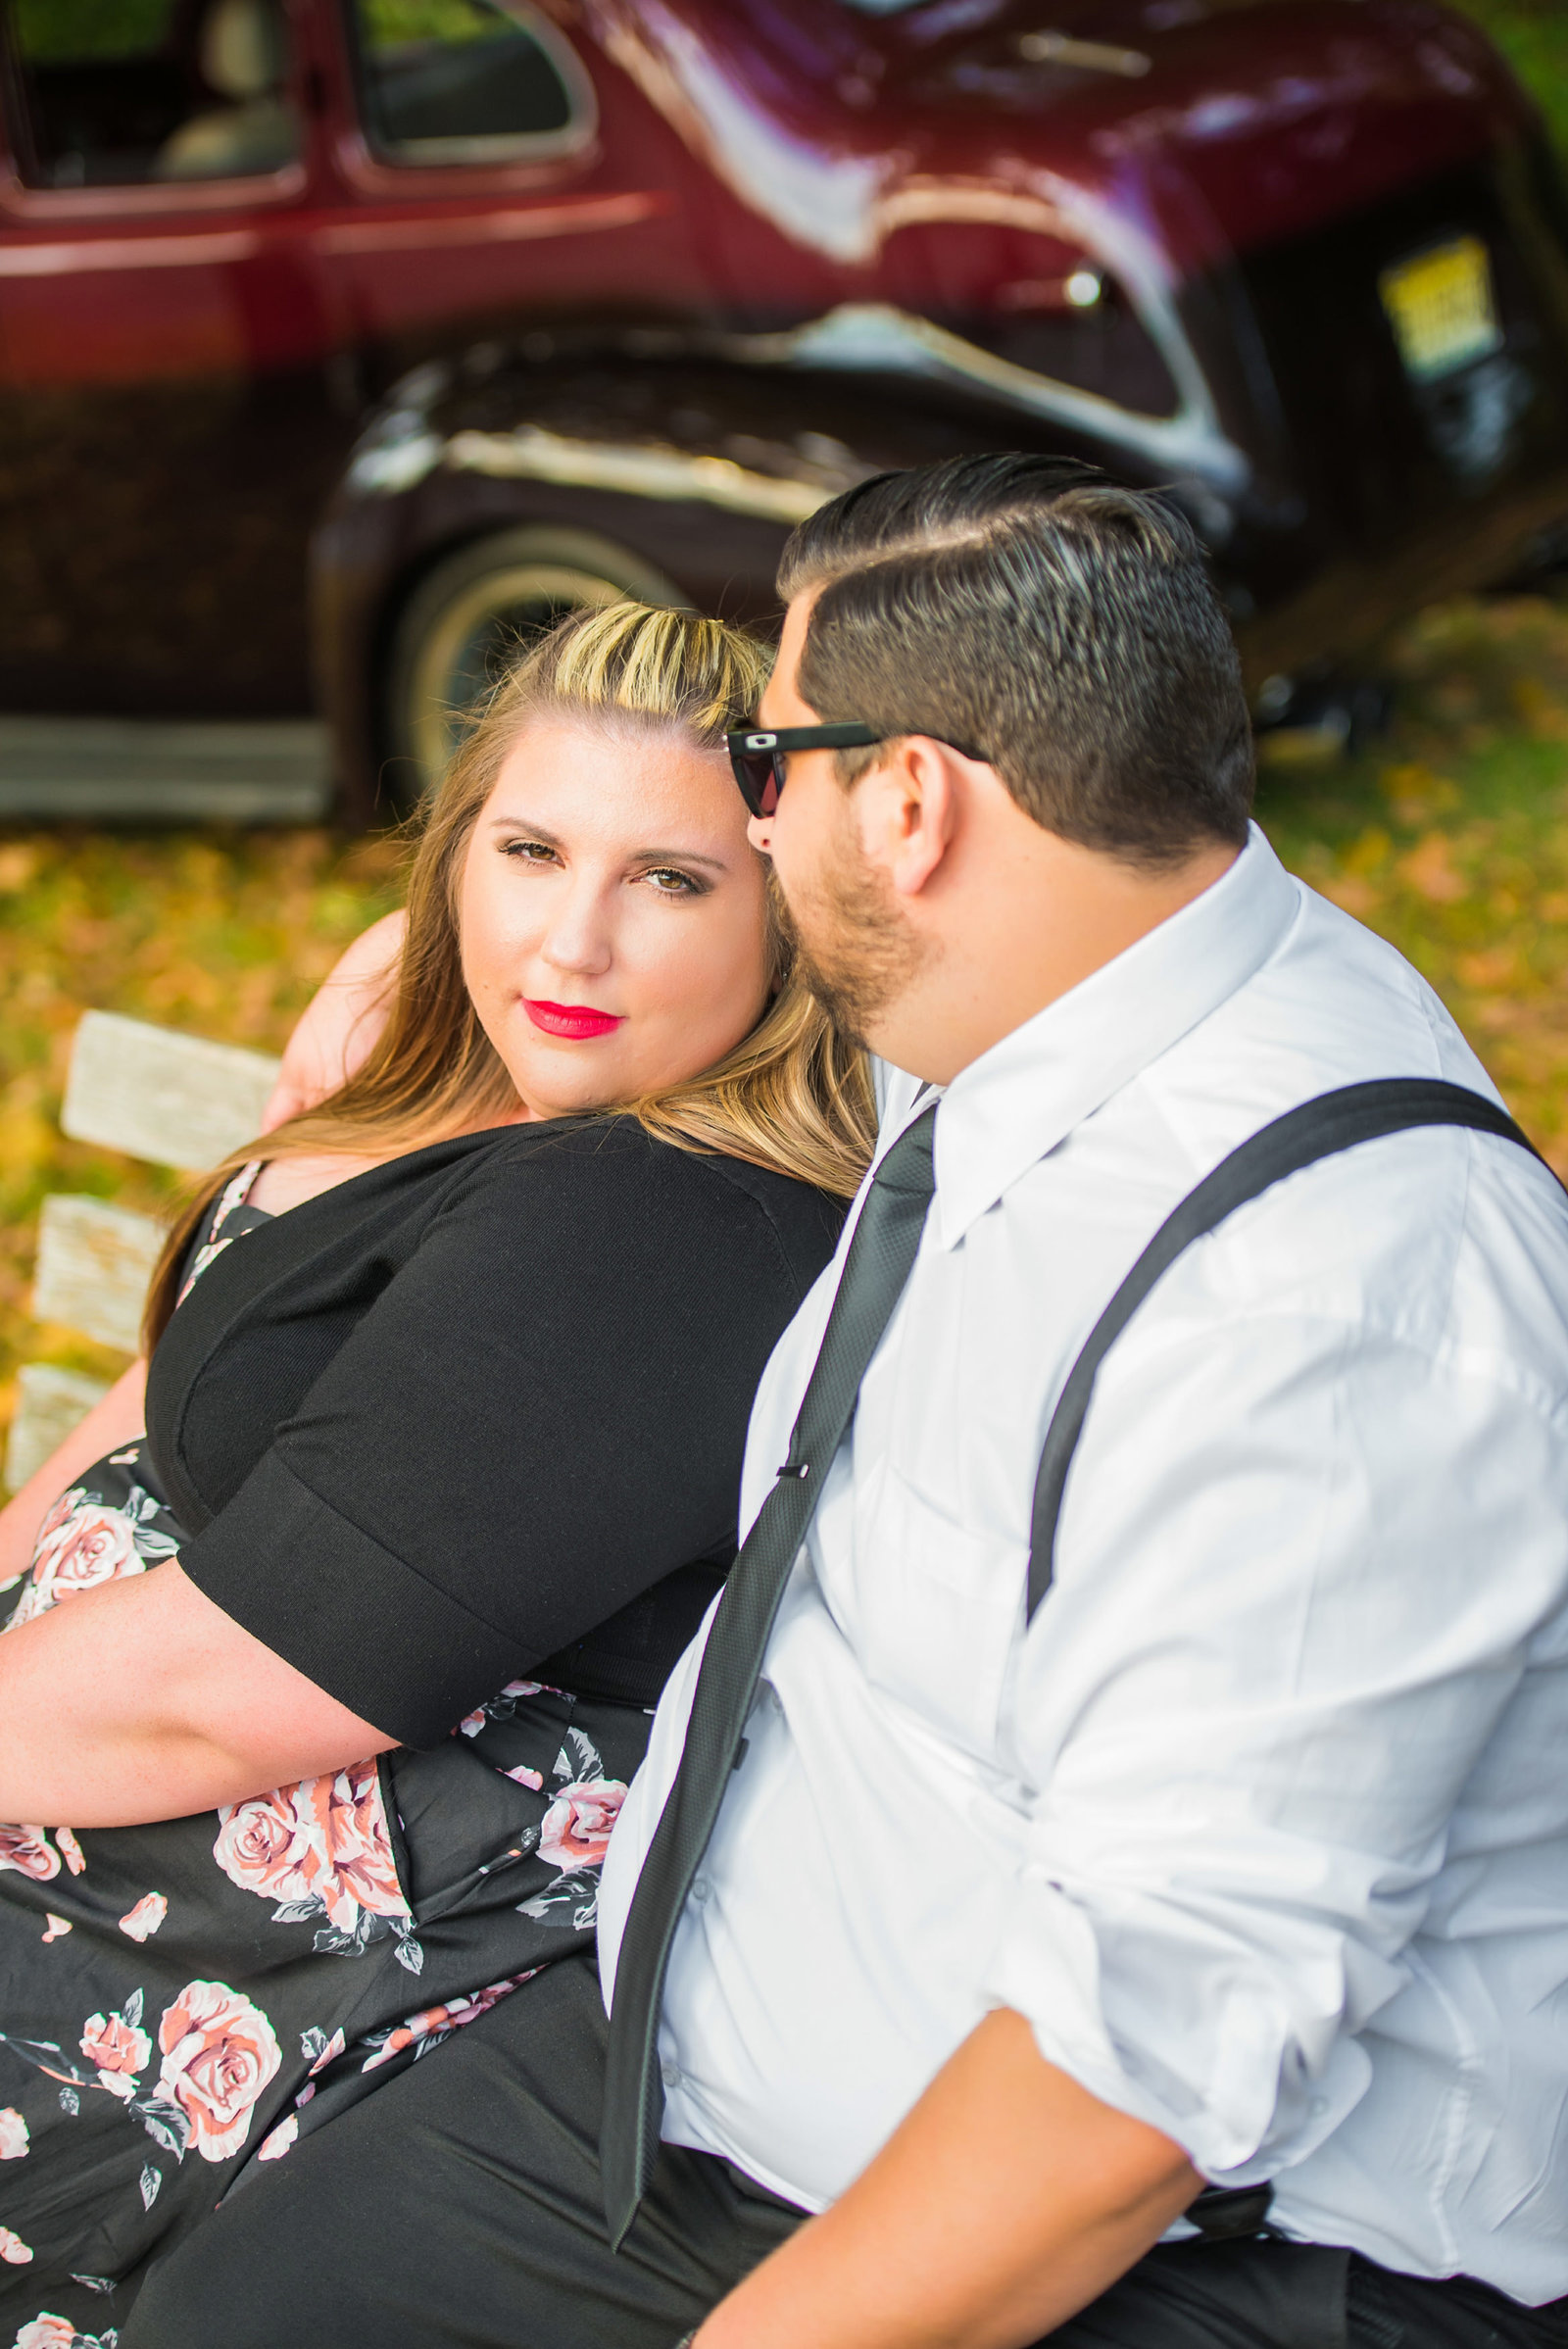 Retro_Pinup_Car_engagement_session_Nj067